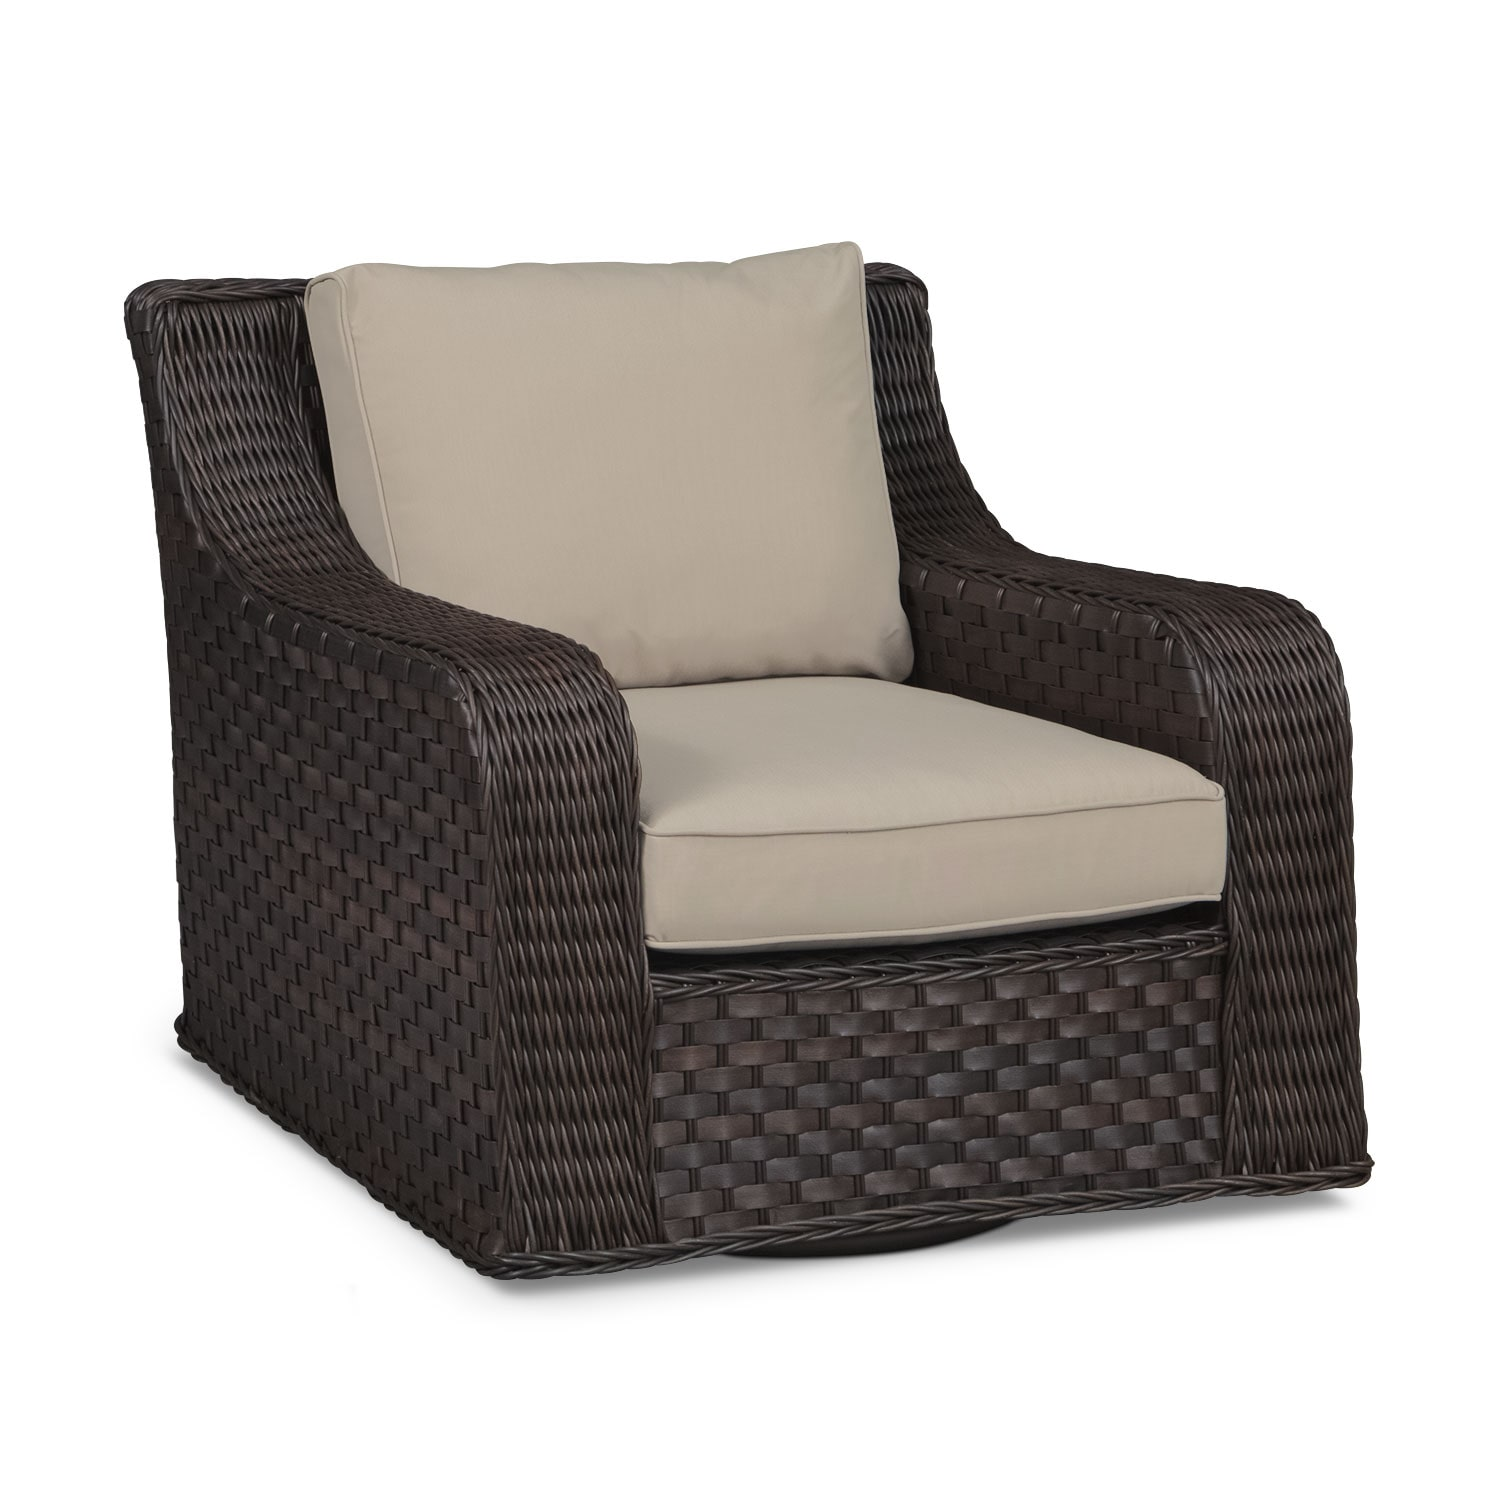 Doral Outdoor Swivel Rocker